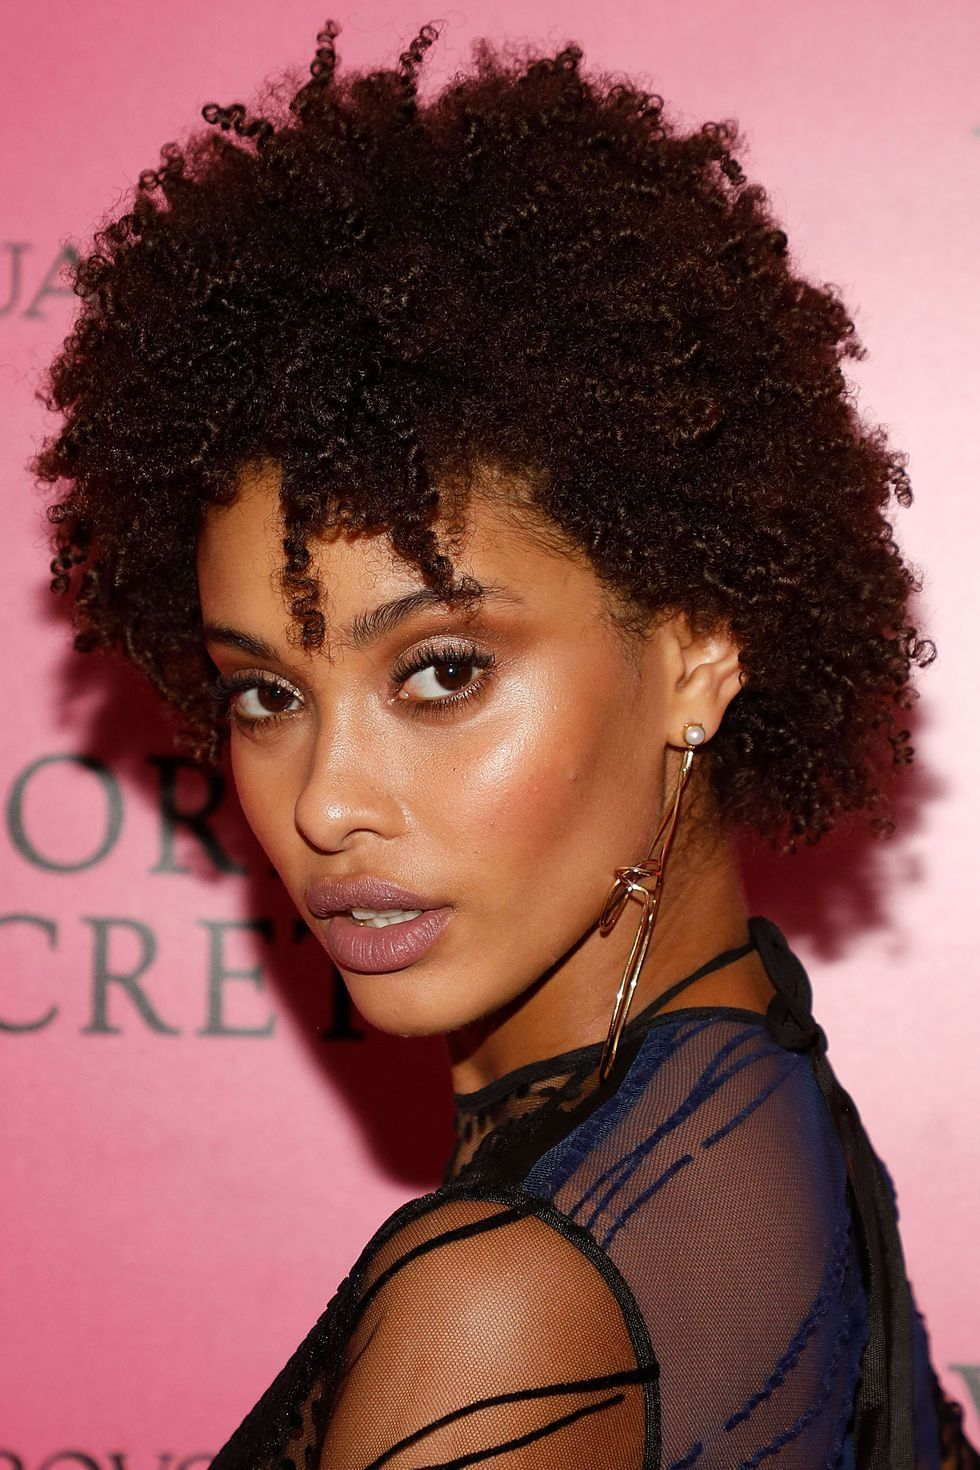 easy natural hairstyles for black women ideas for short